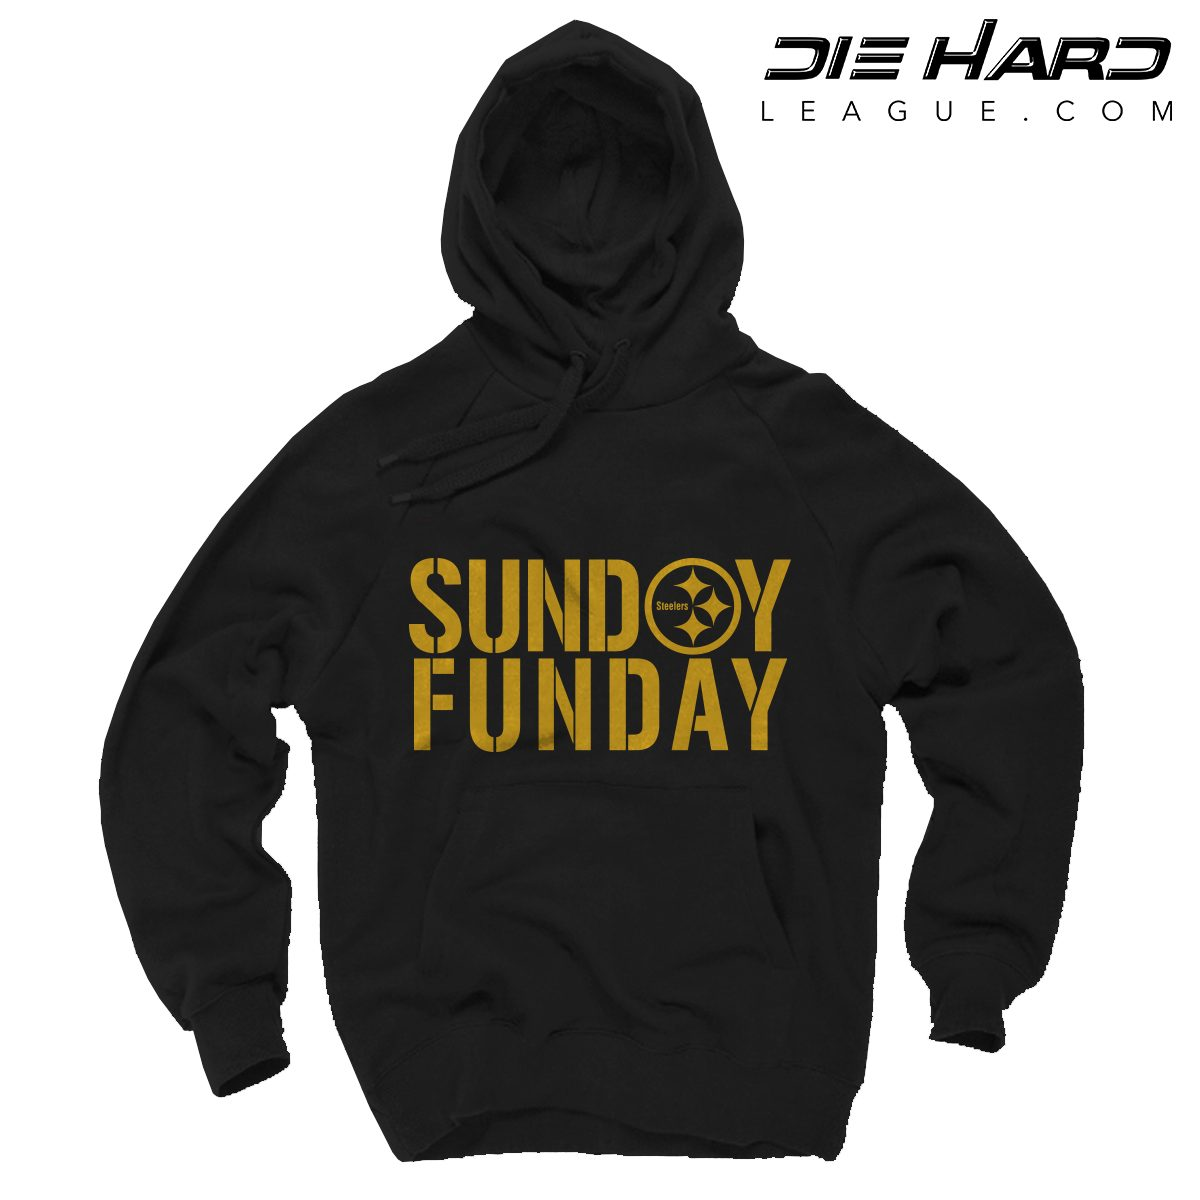 timeless design 3dd7a b6e33 Steelers Sweater Pittsburgh - Sunday Funday Black Hoodie